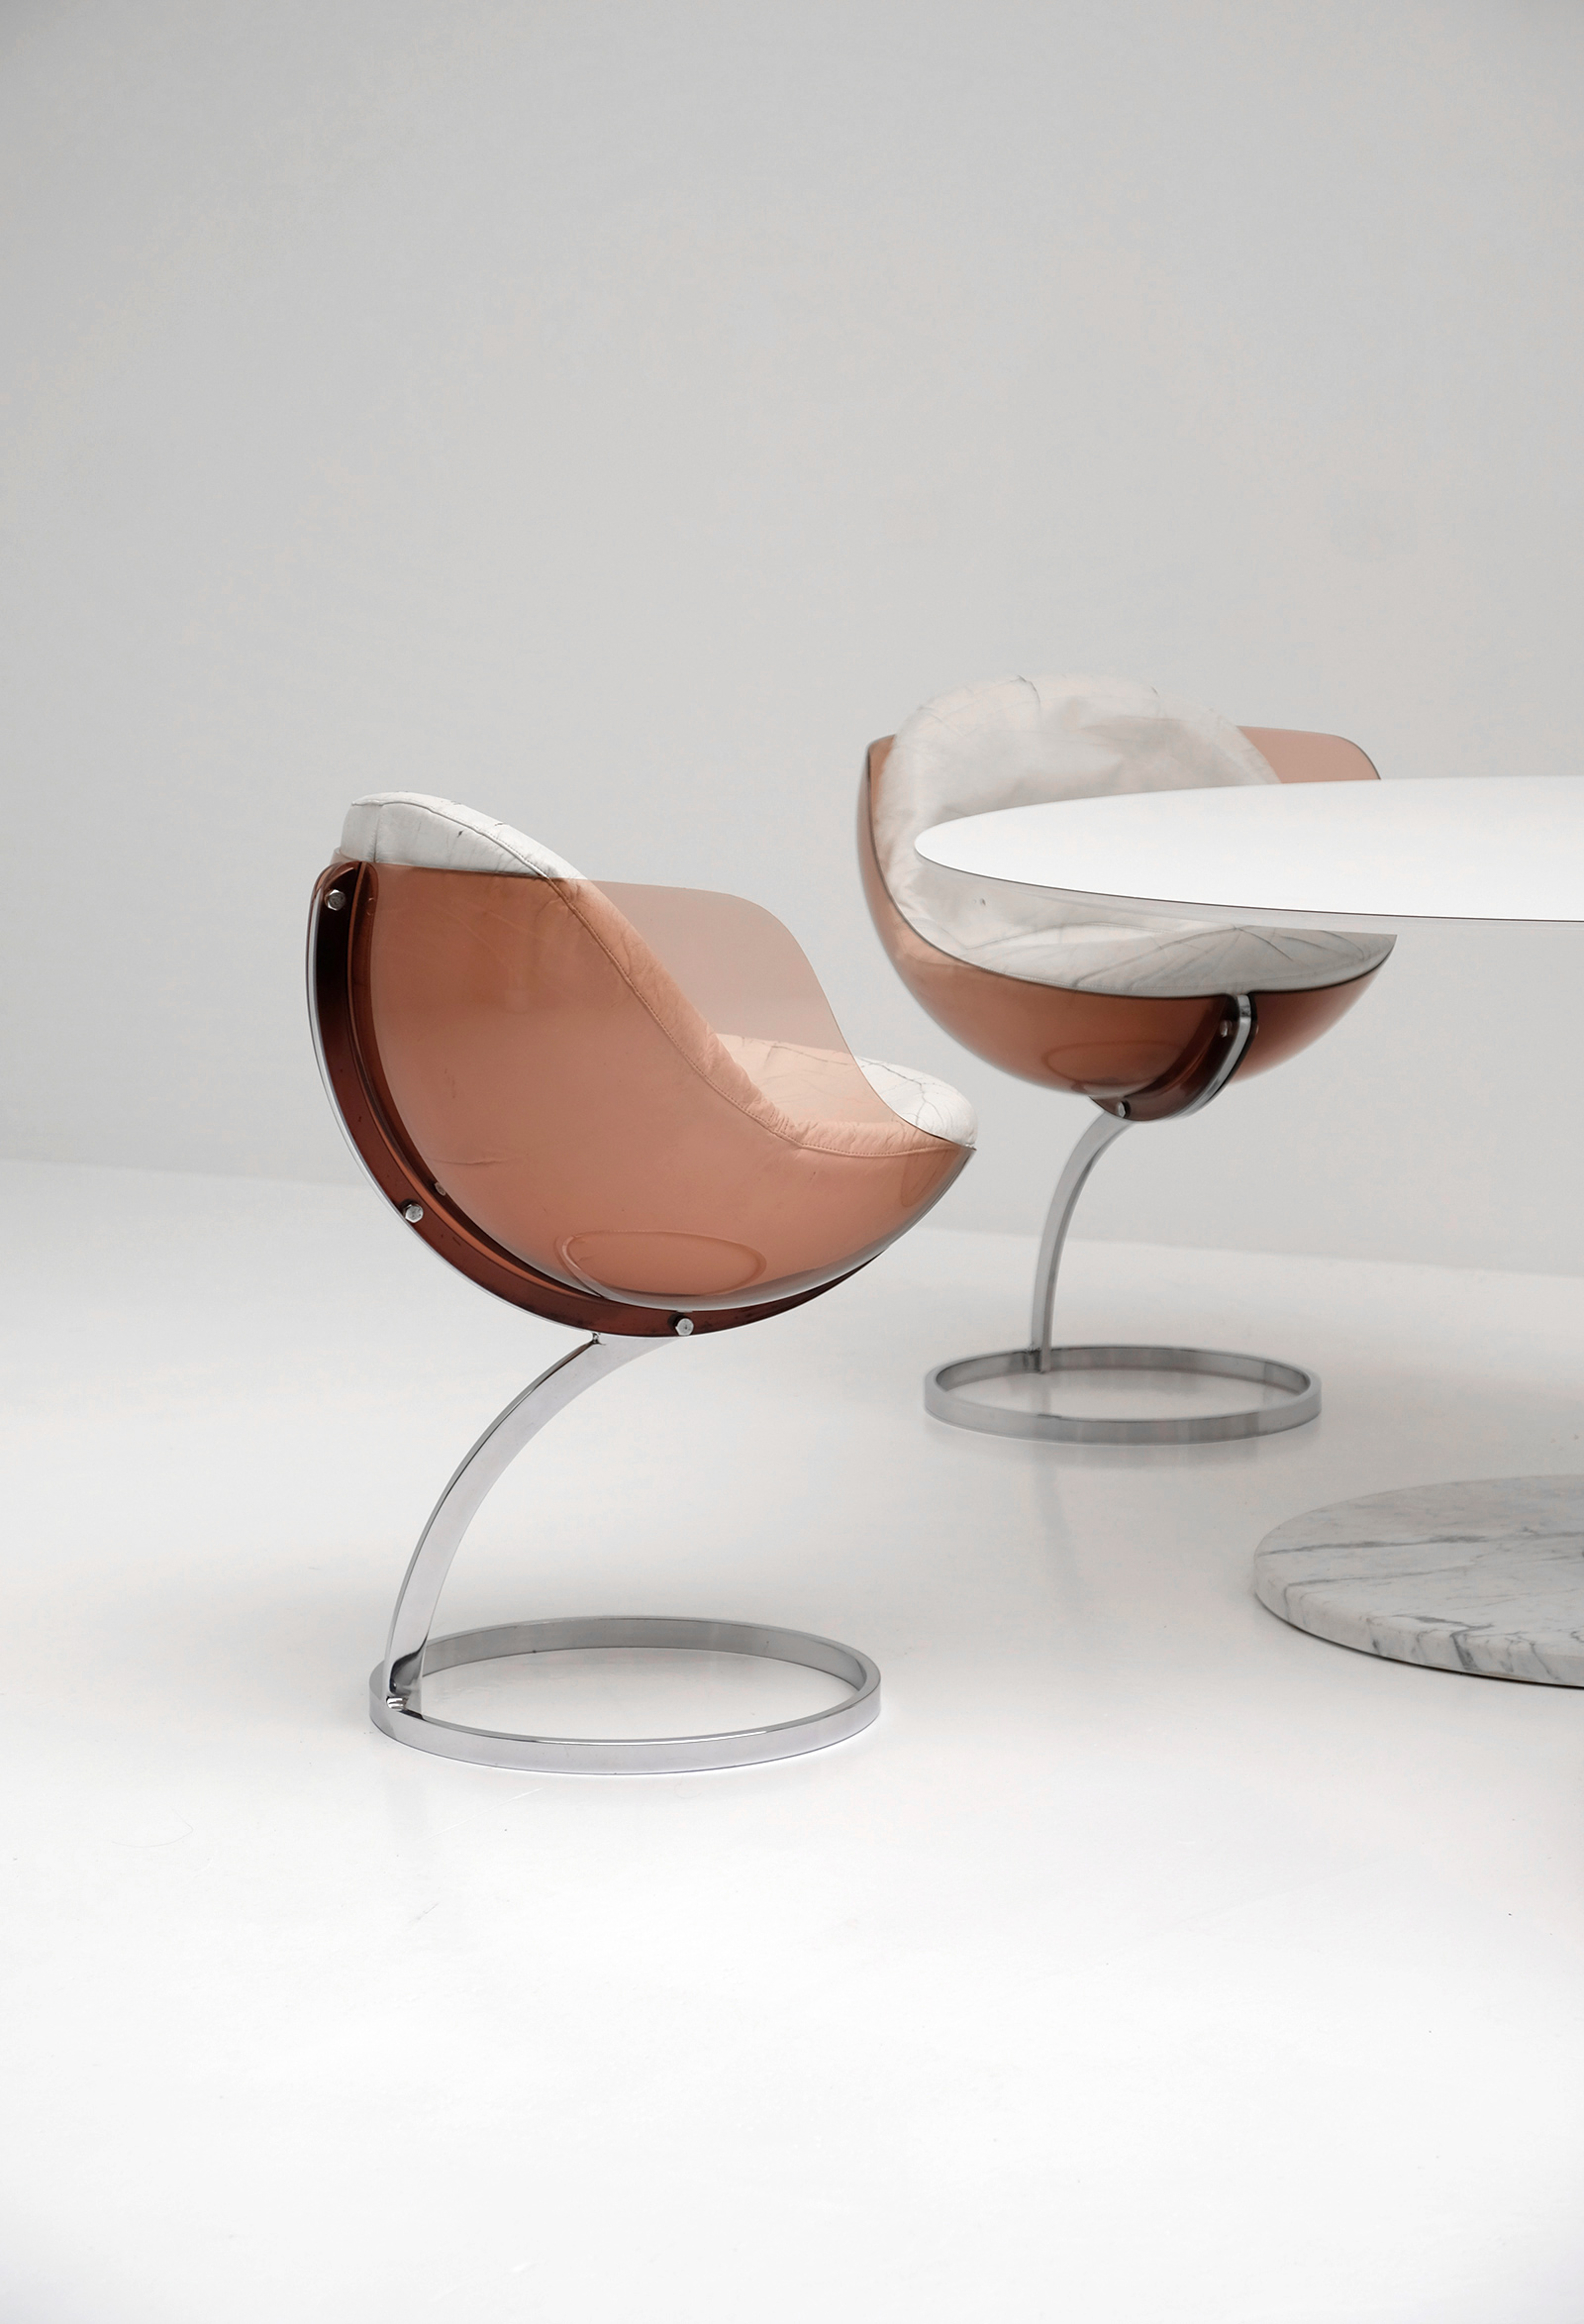 Boris Tabacoff Sphere Chairs Mobillier Modulaire Modernimage 6